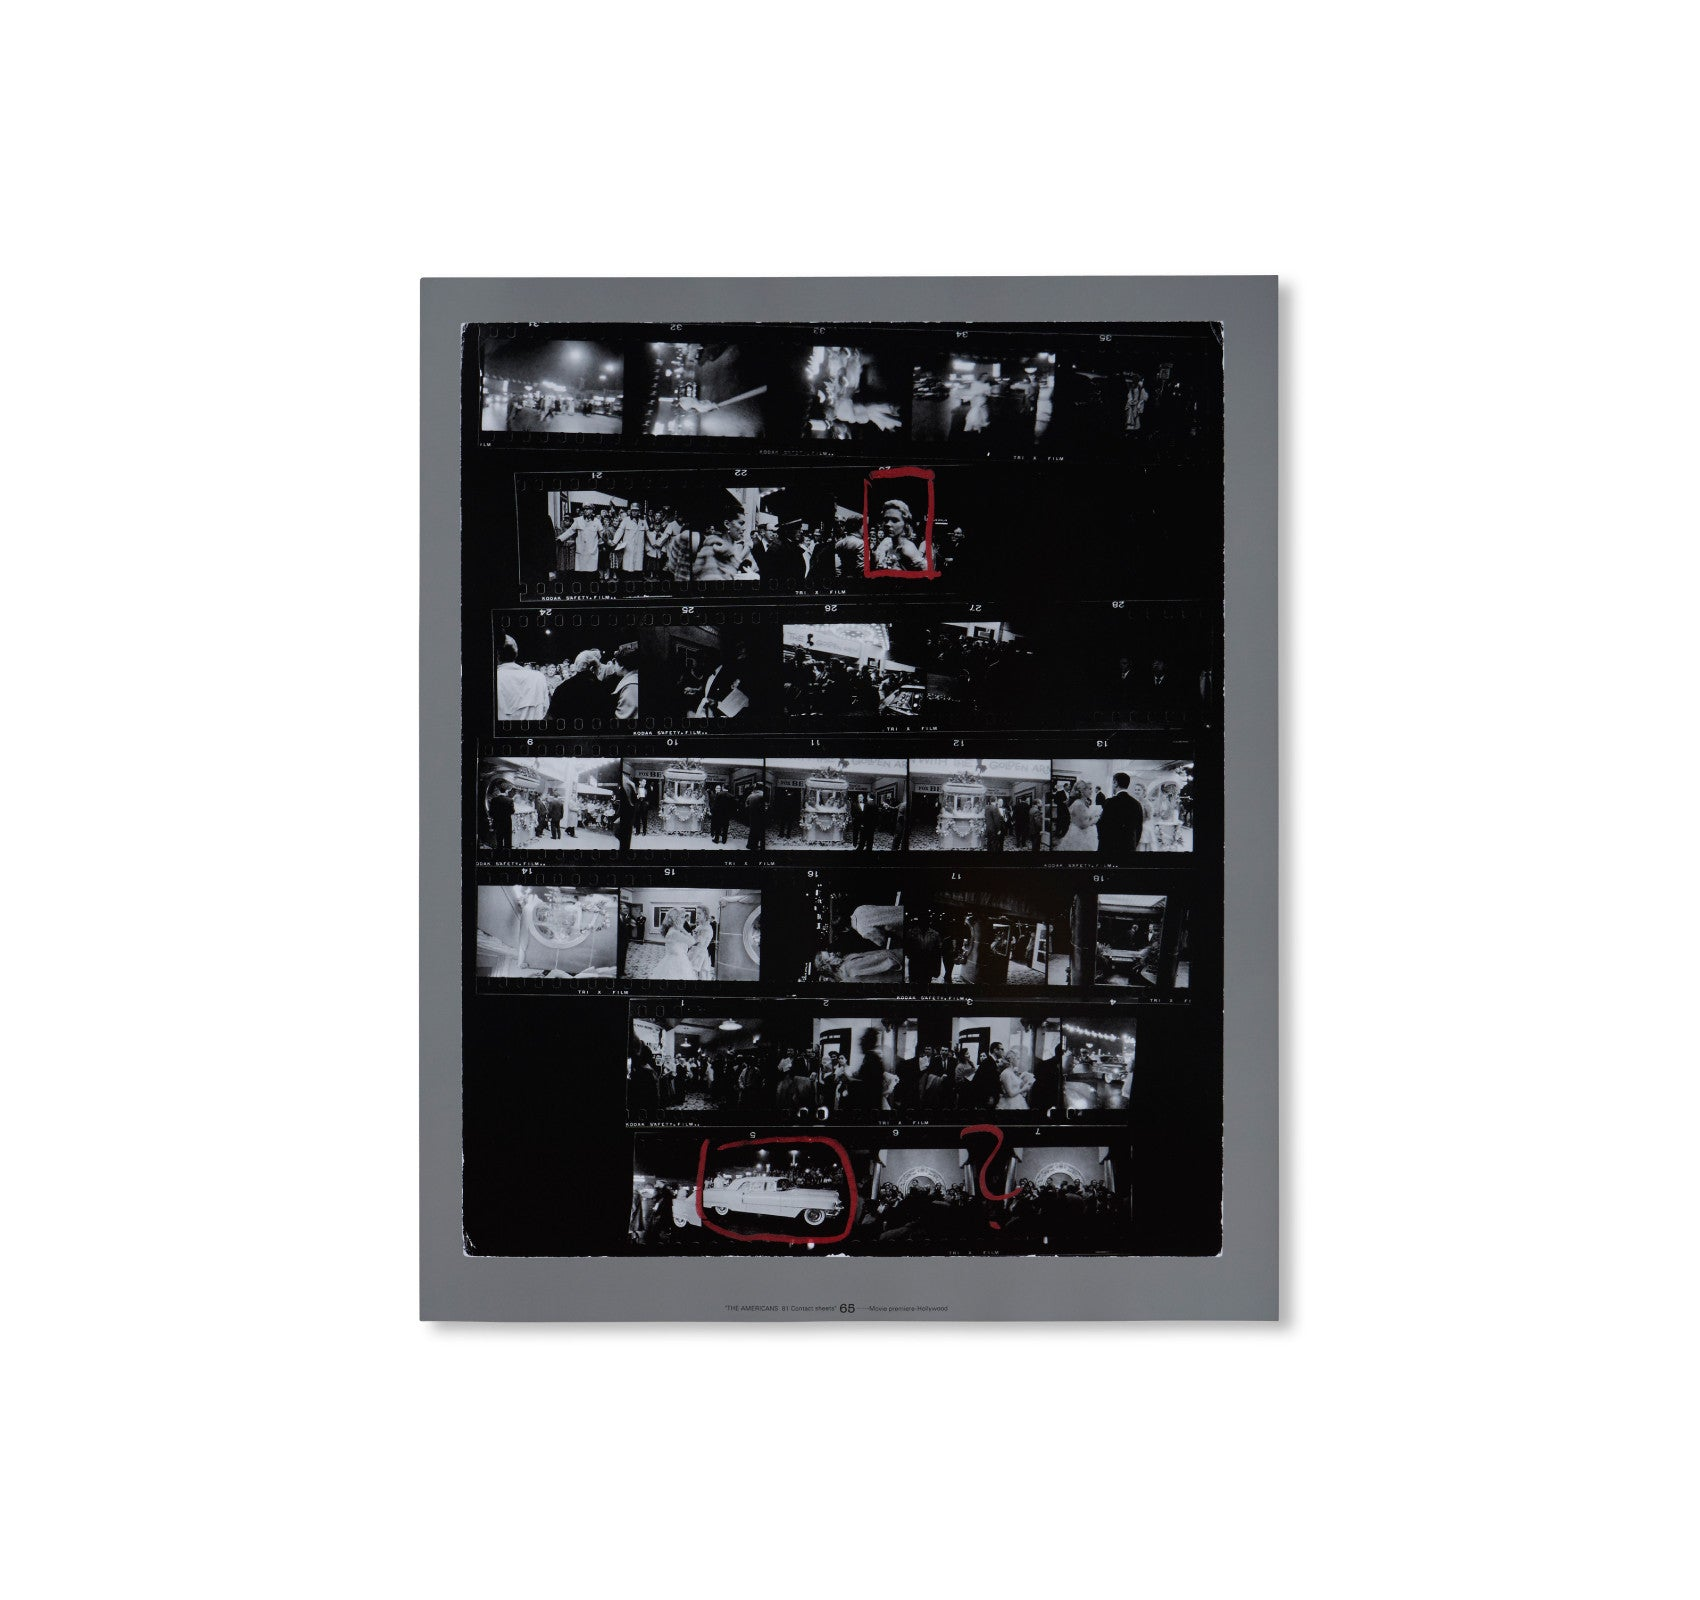 THE AMERICANS, 81 CONTACT SHEETS (PAULOWNIA WOOD BOX) by Robert Frank